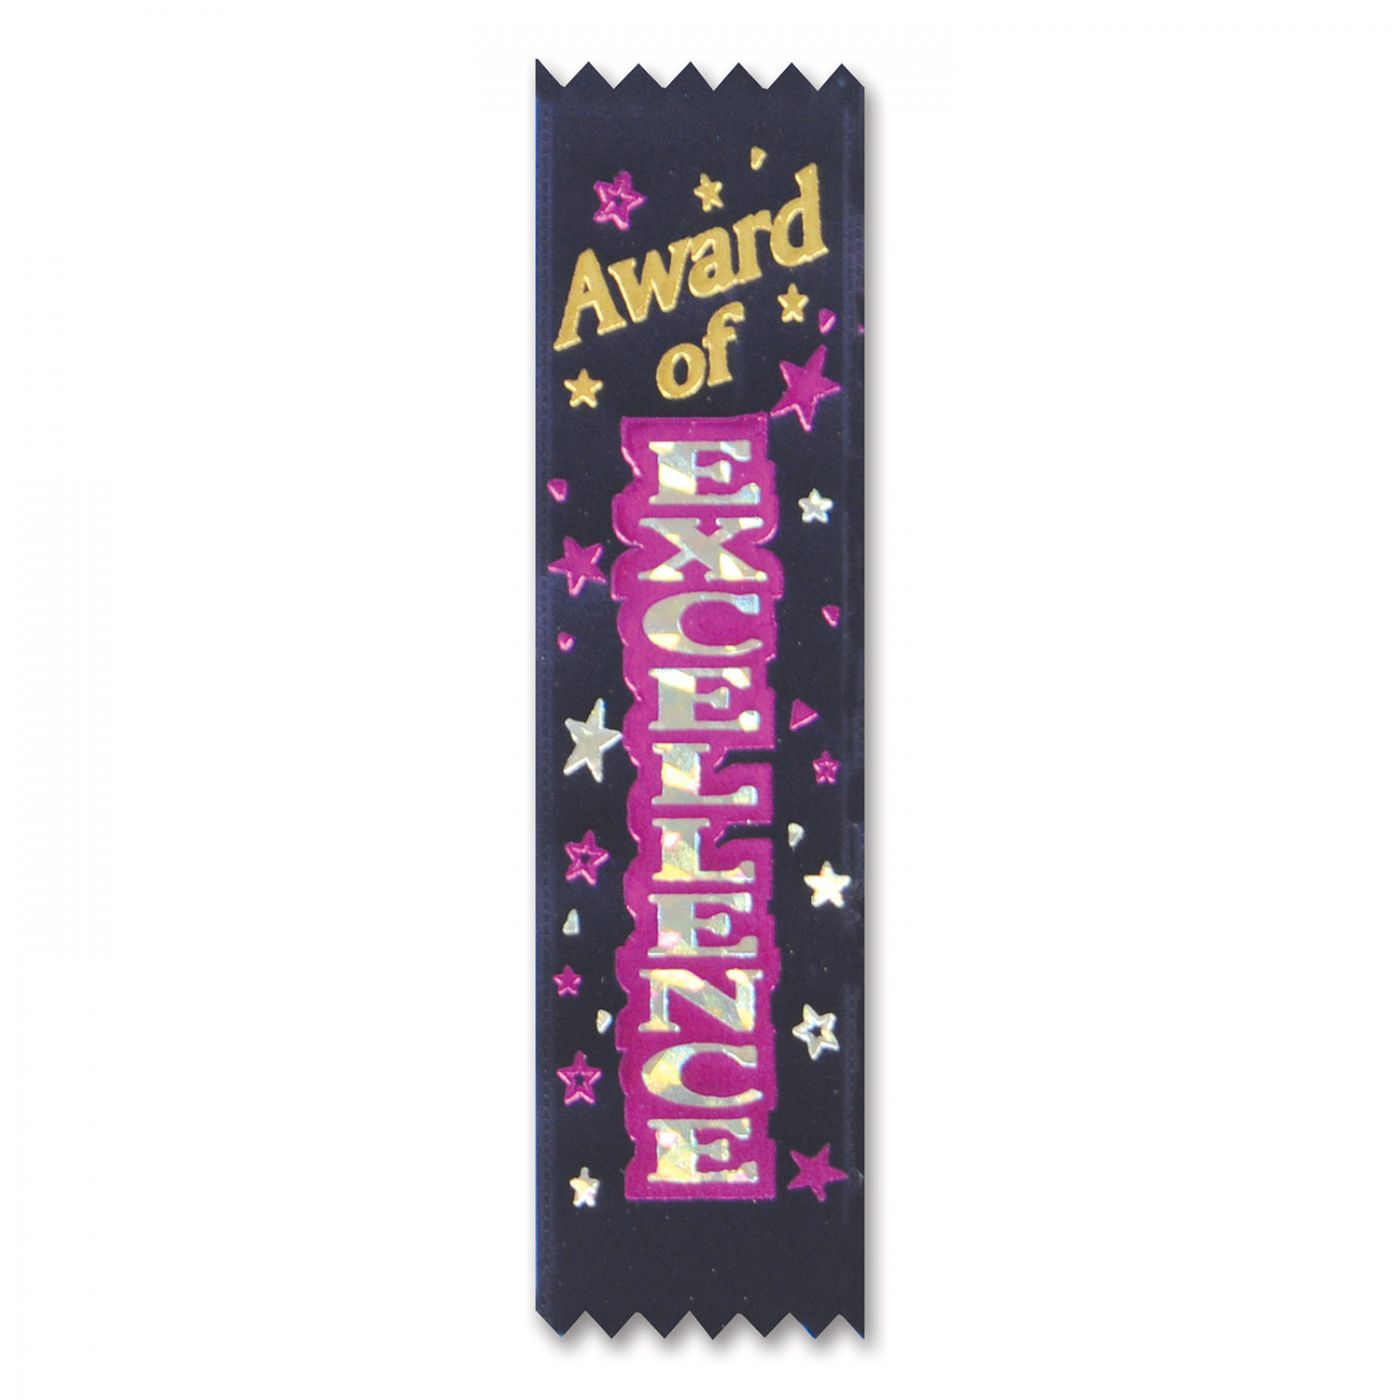 Image of Award Of Excellence Value Pack Ribbons (3)